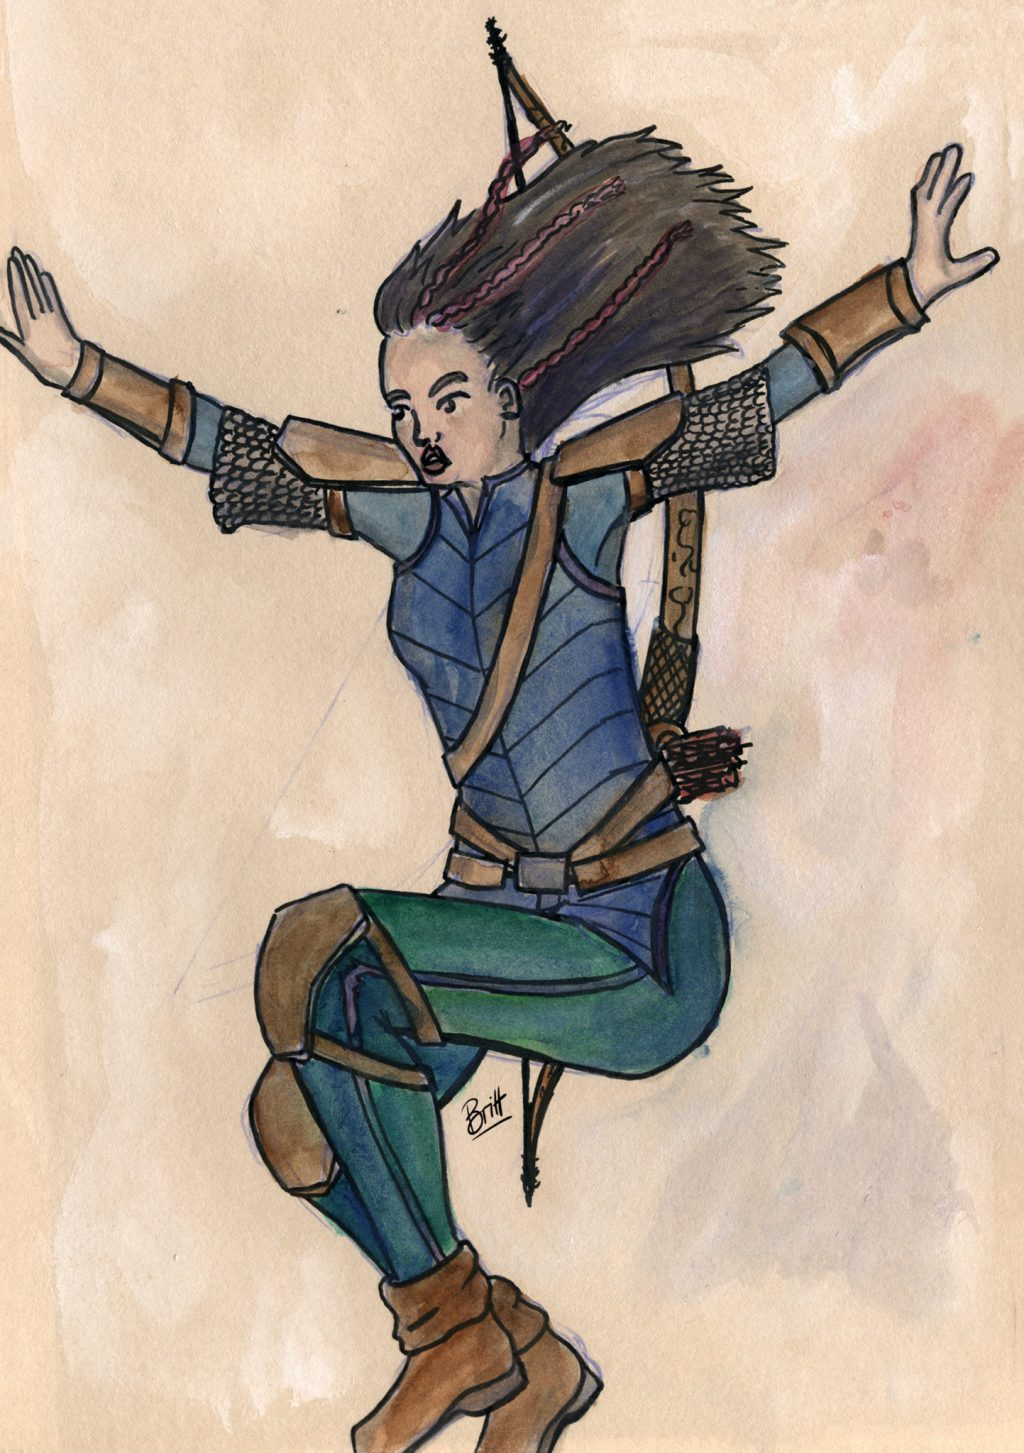 Berna, one of my D&D characters, a ranger jumping from a height.